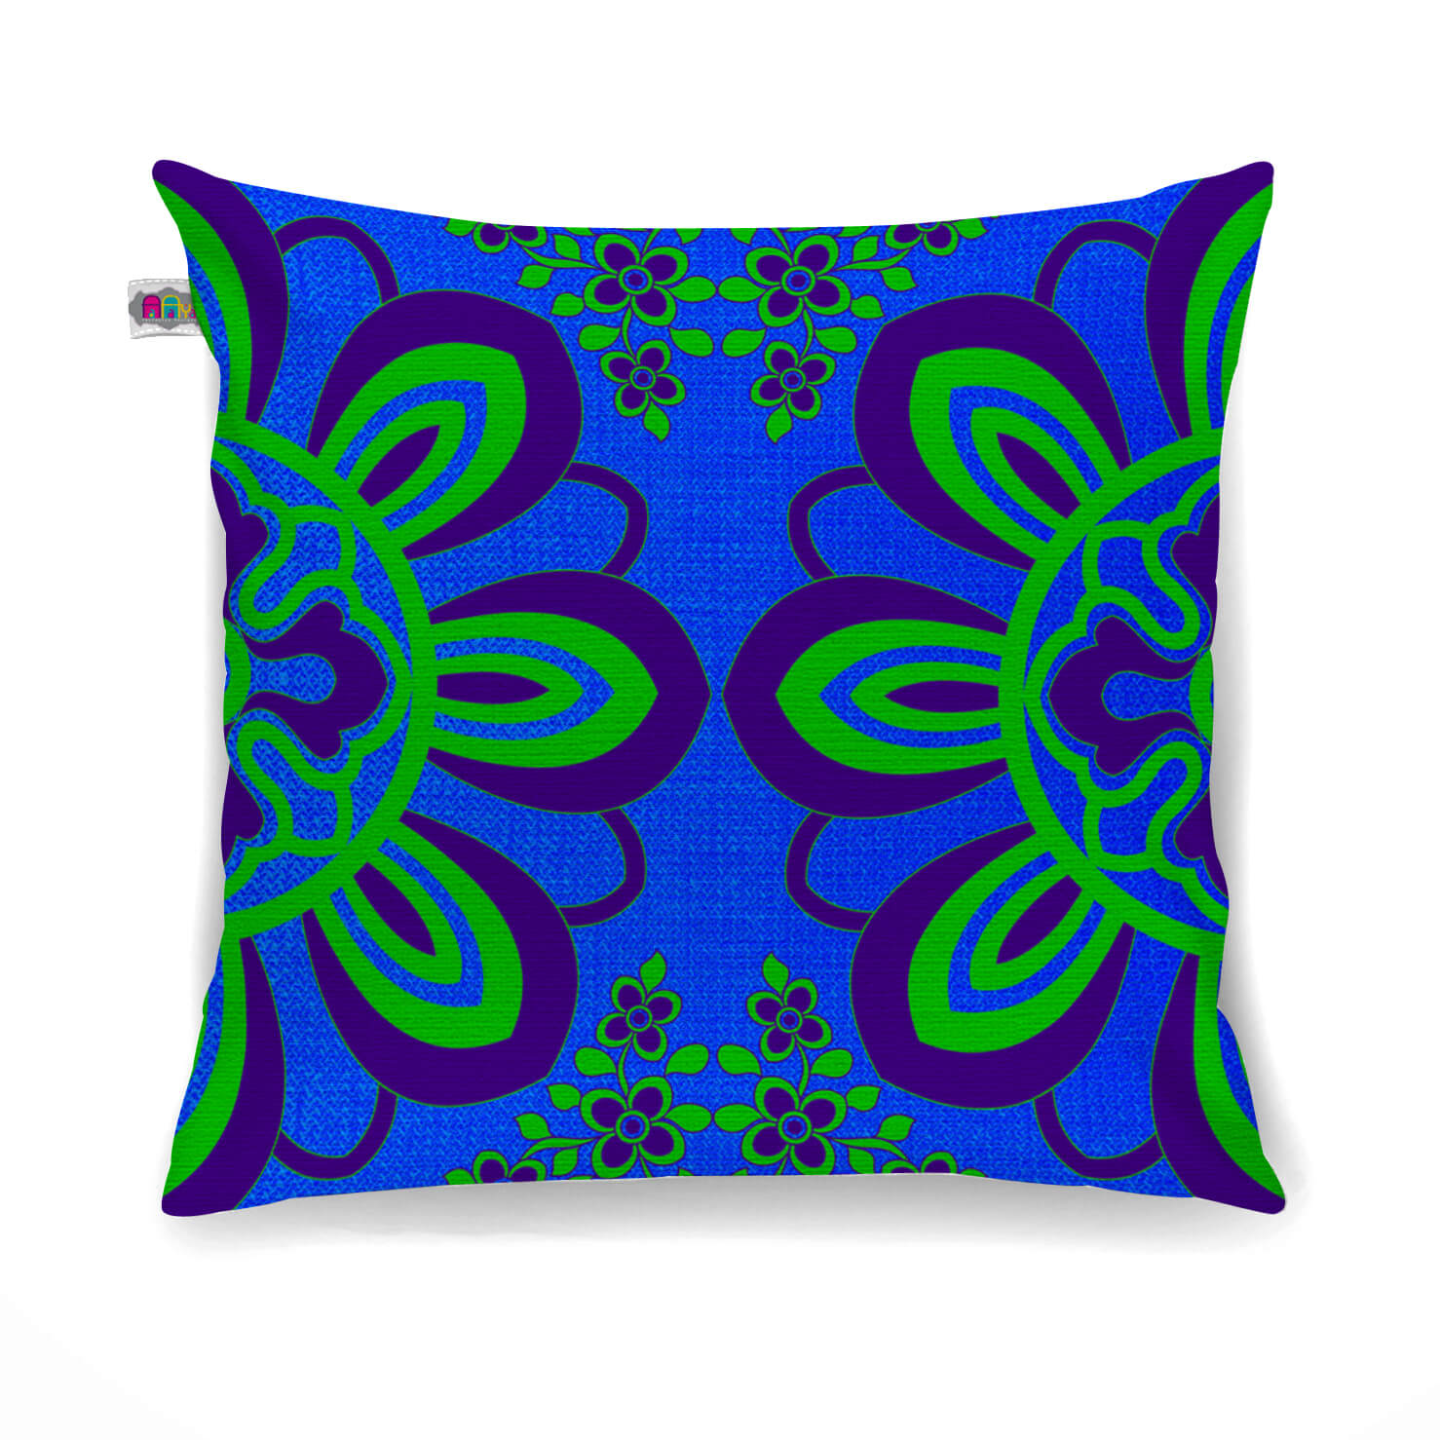 Flourishing Flower Motif Cushion Cover